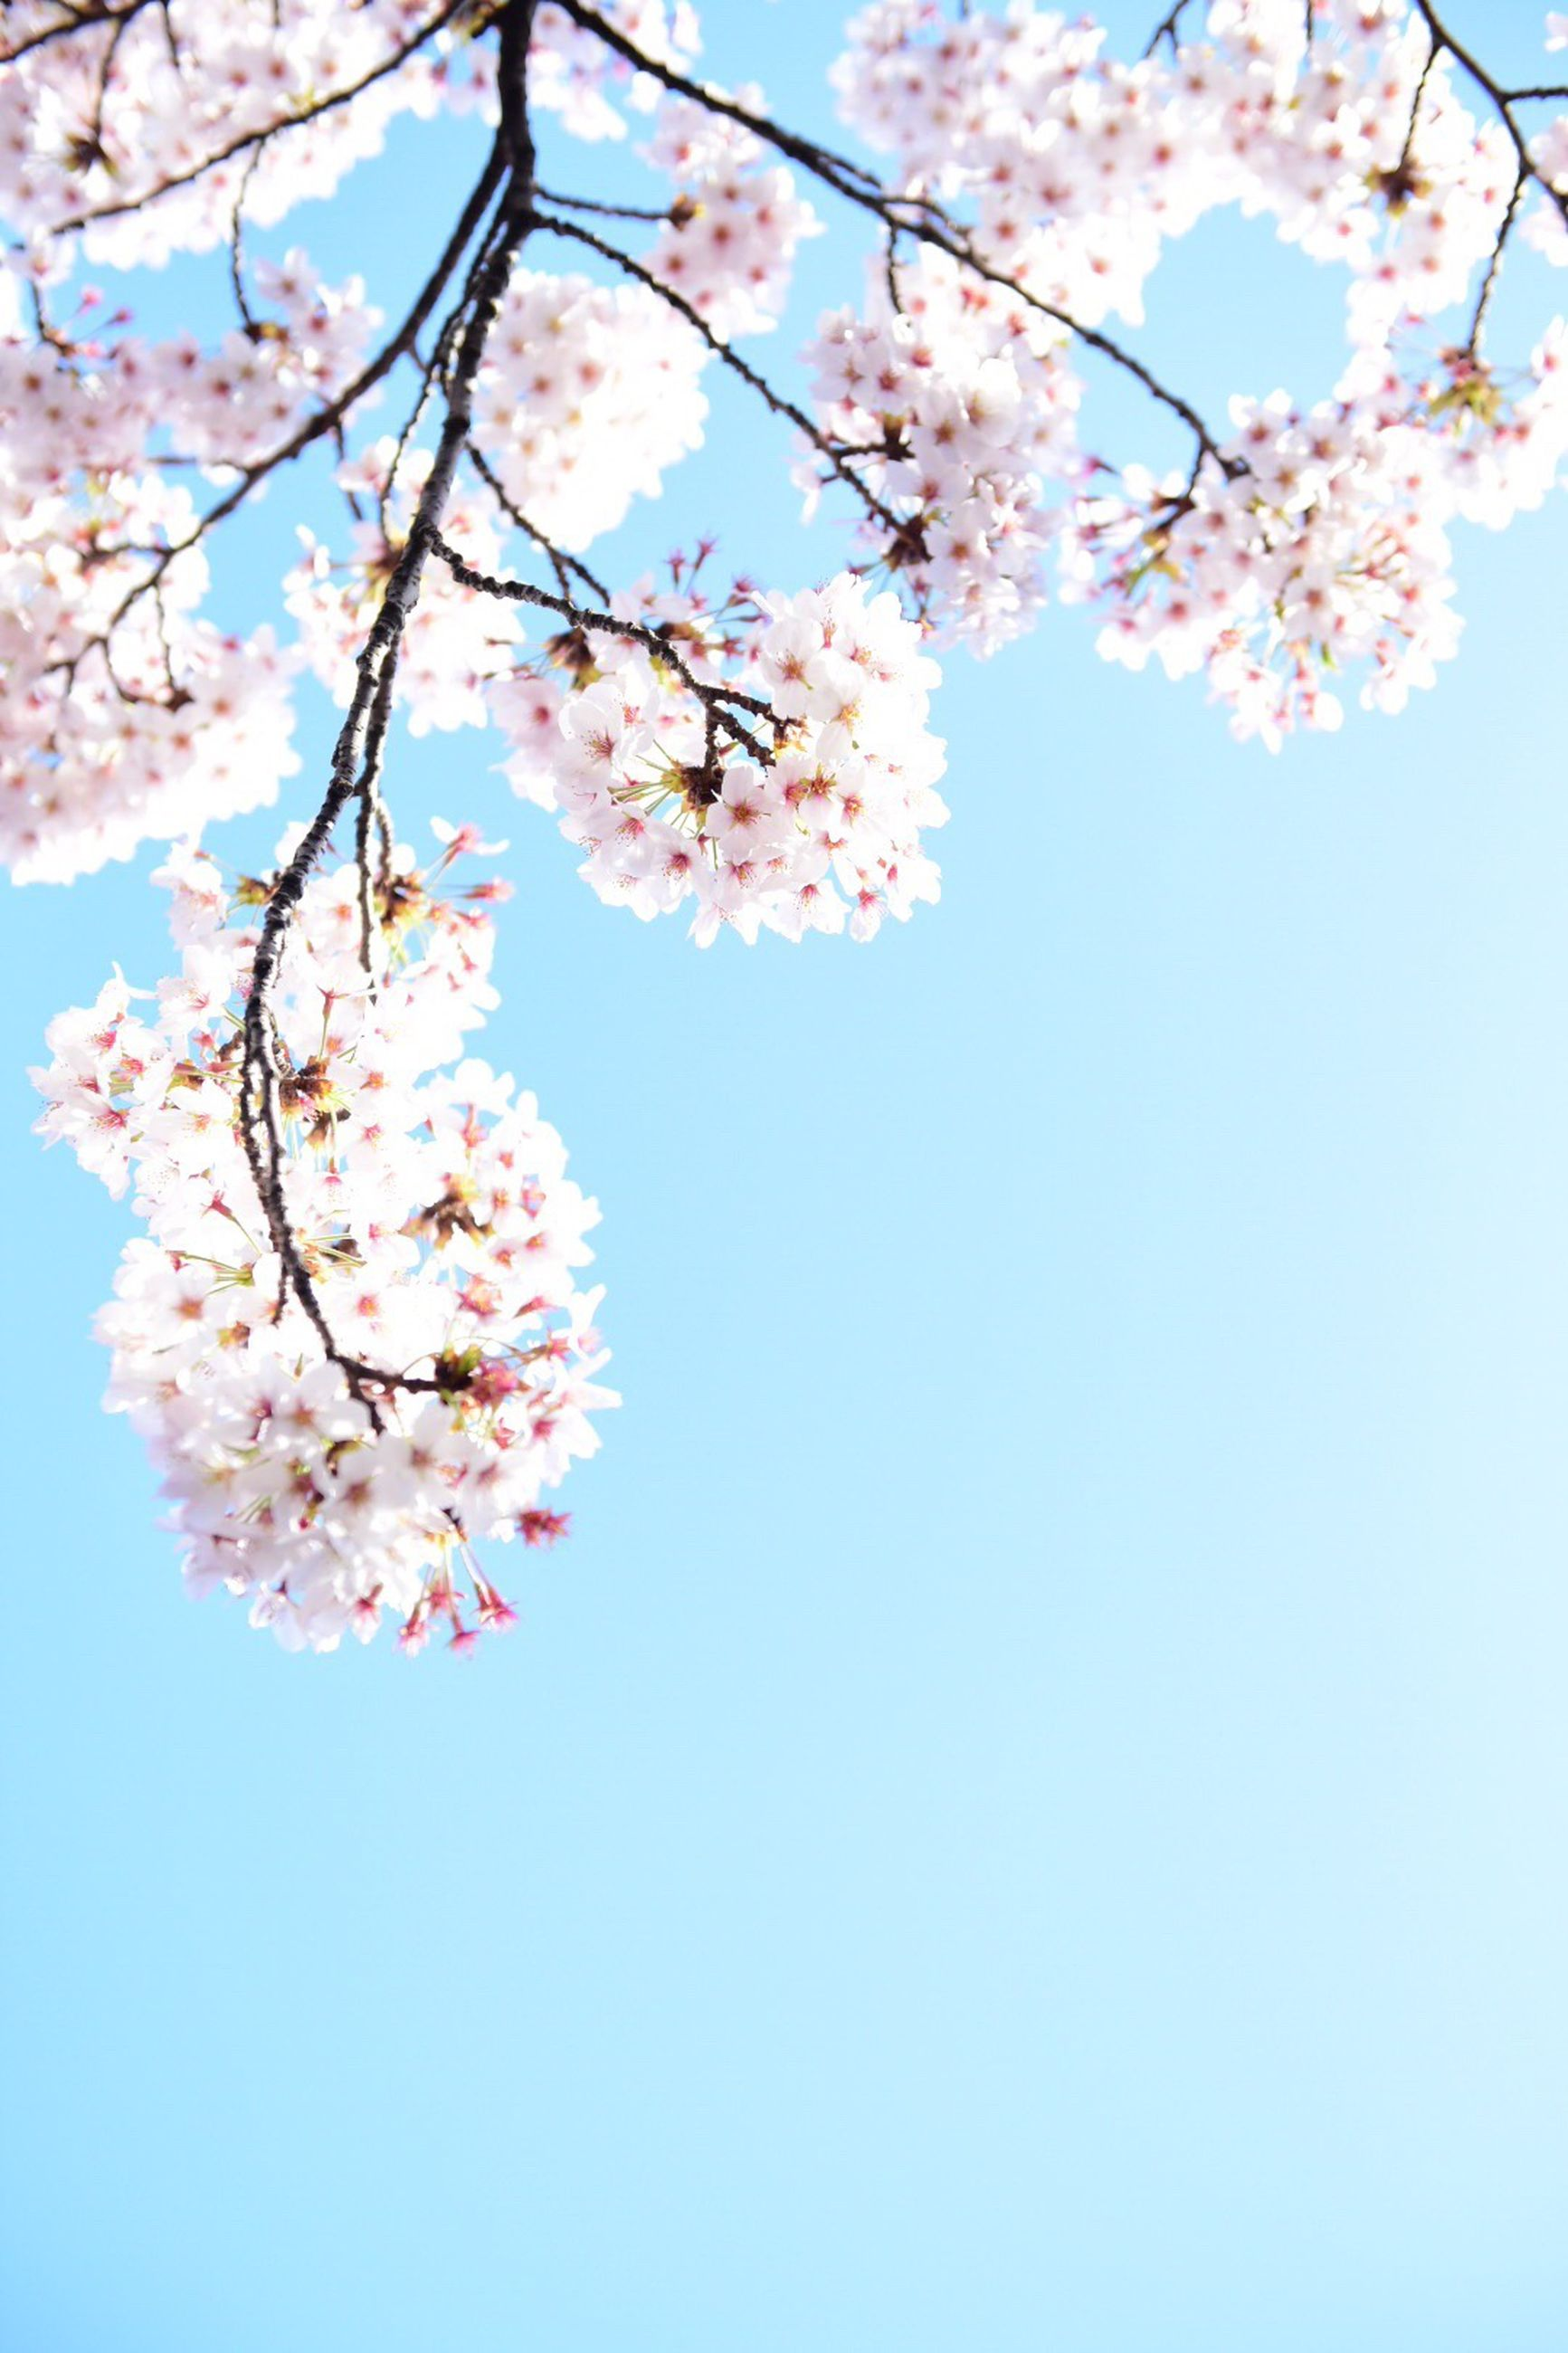 flower, freshness, tree, branch, cherry blossom, low angle view, growth, fragility, cherry tree, blossom, beauty in nature, clear sky, nature, pink color, blooming, in bloom, springtime, fruit tree, petal, day